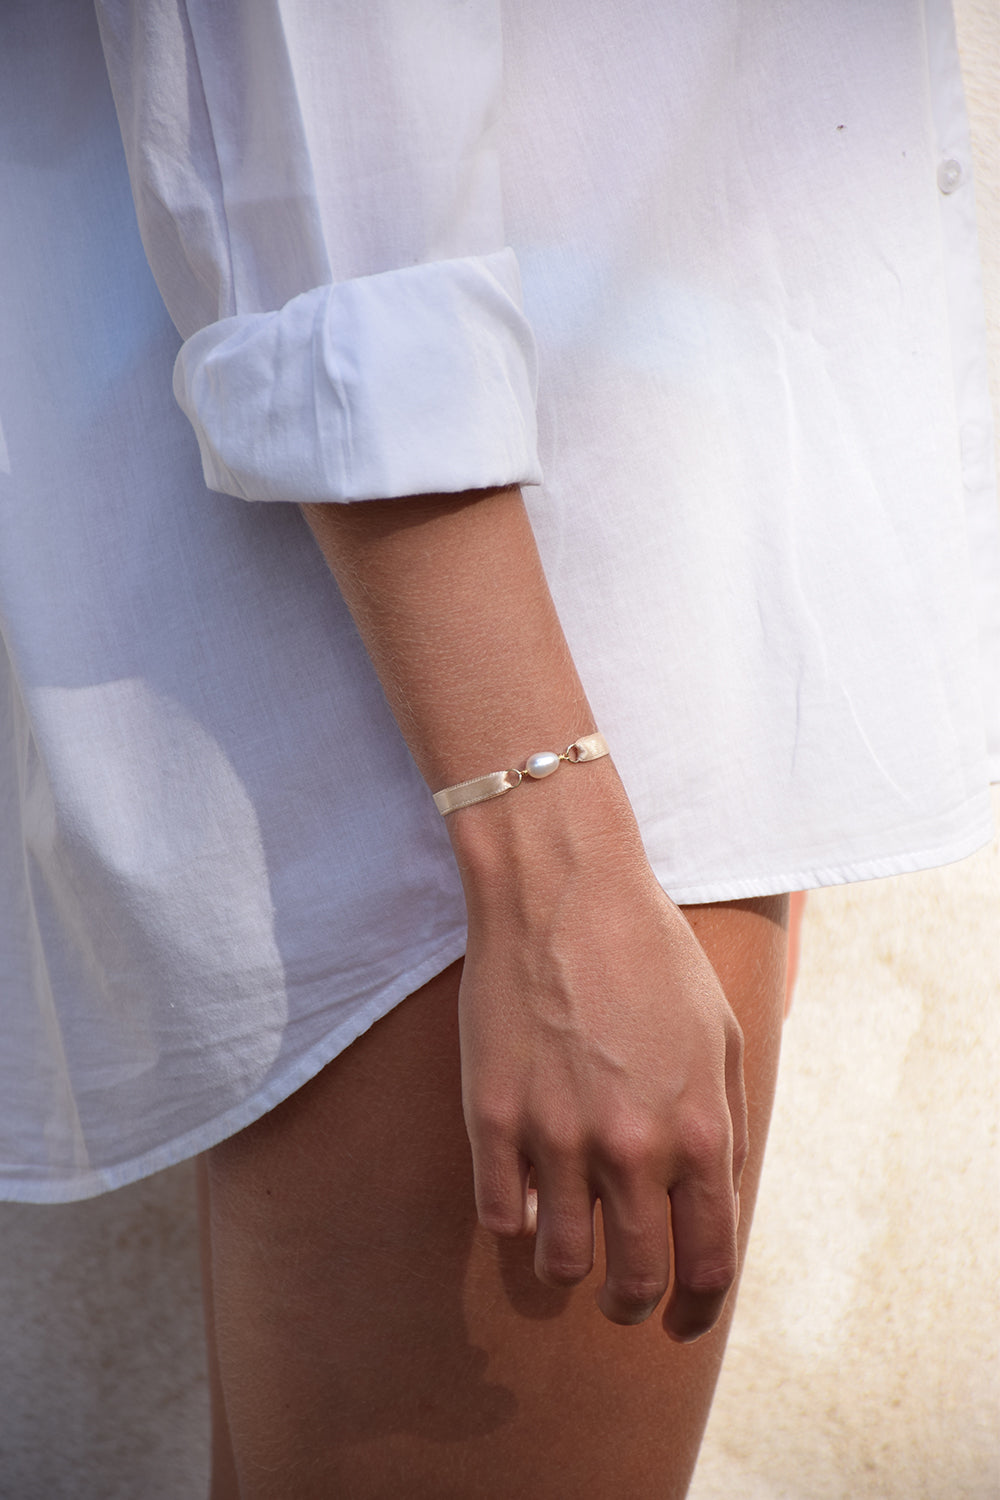 Bracelet ruban de satin |  Beige calisson